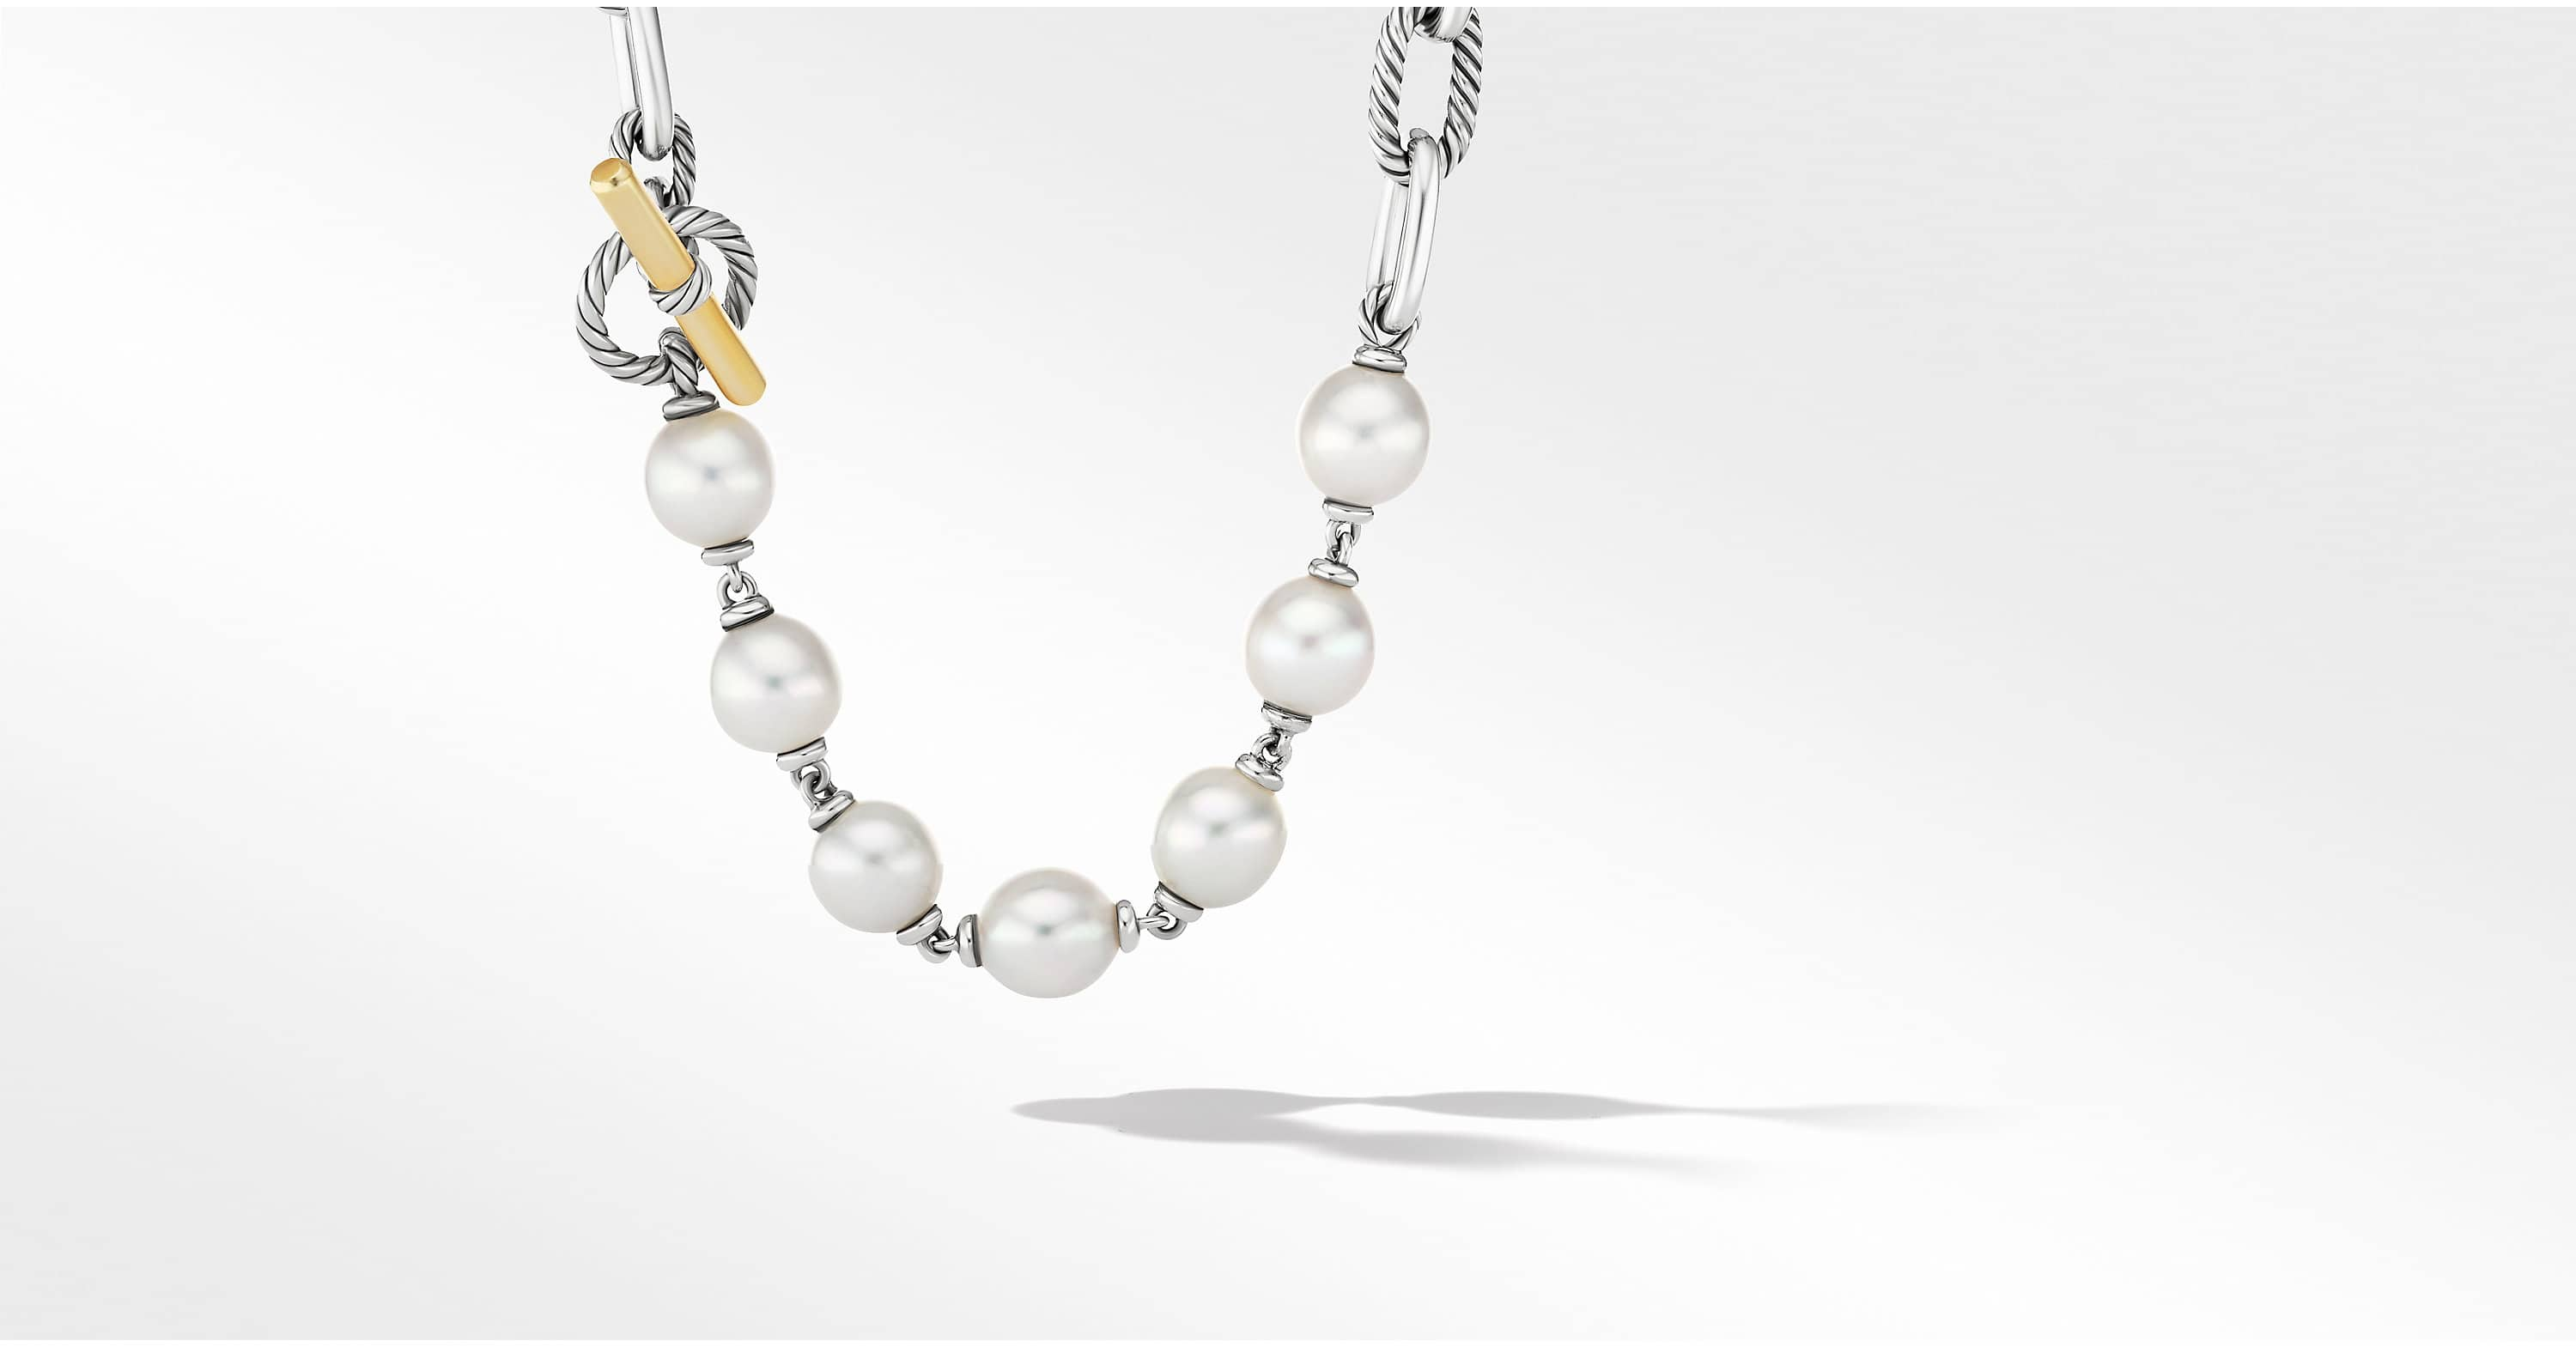 DY Madison Pearl Chain Necklace with 18K Yellow Gold, 11mm